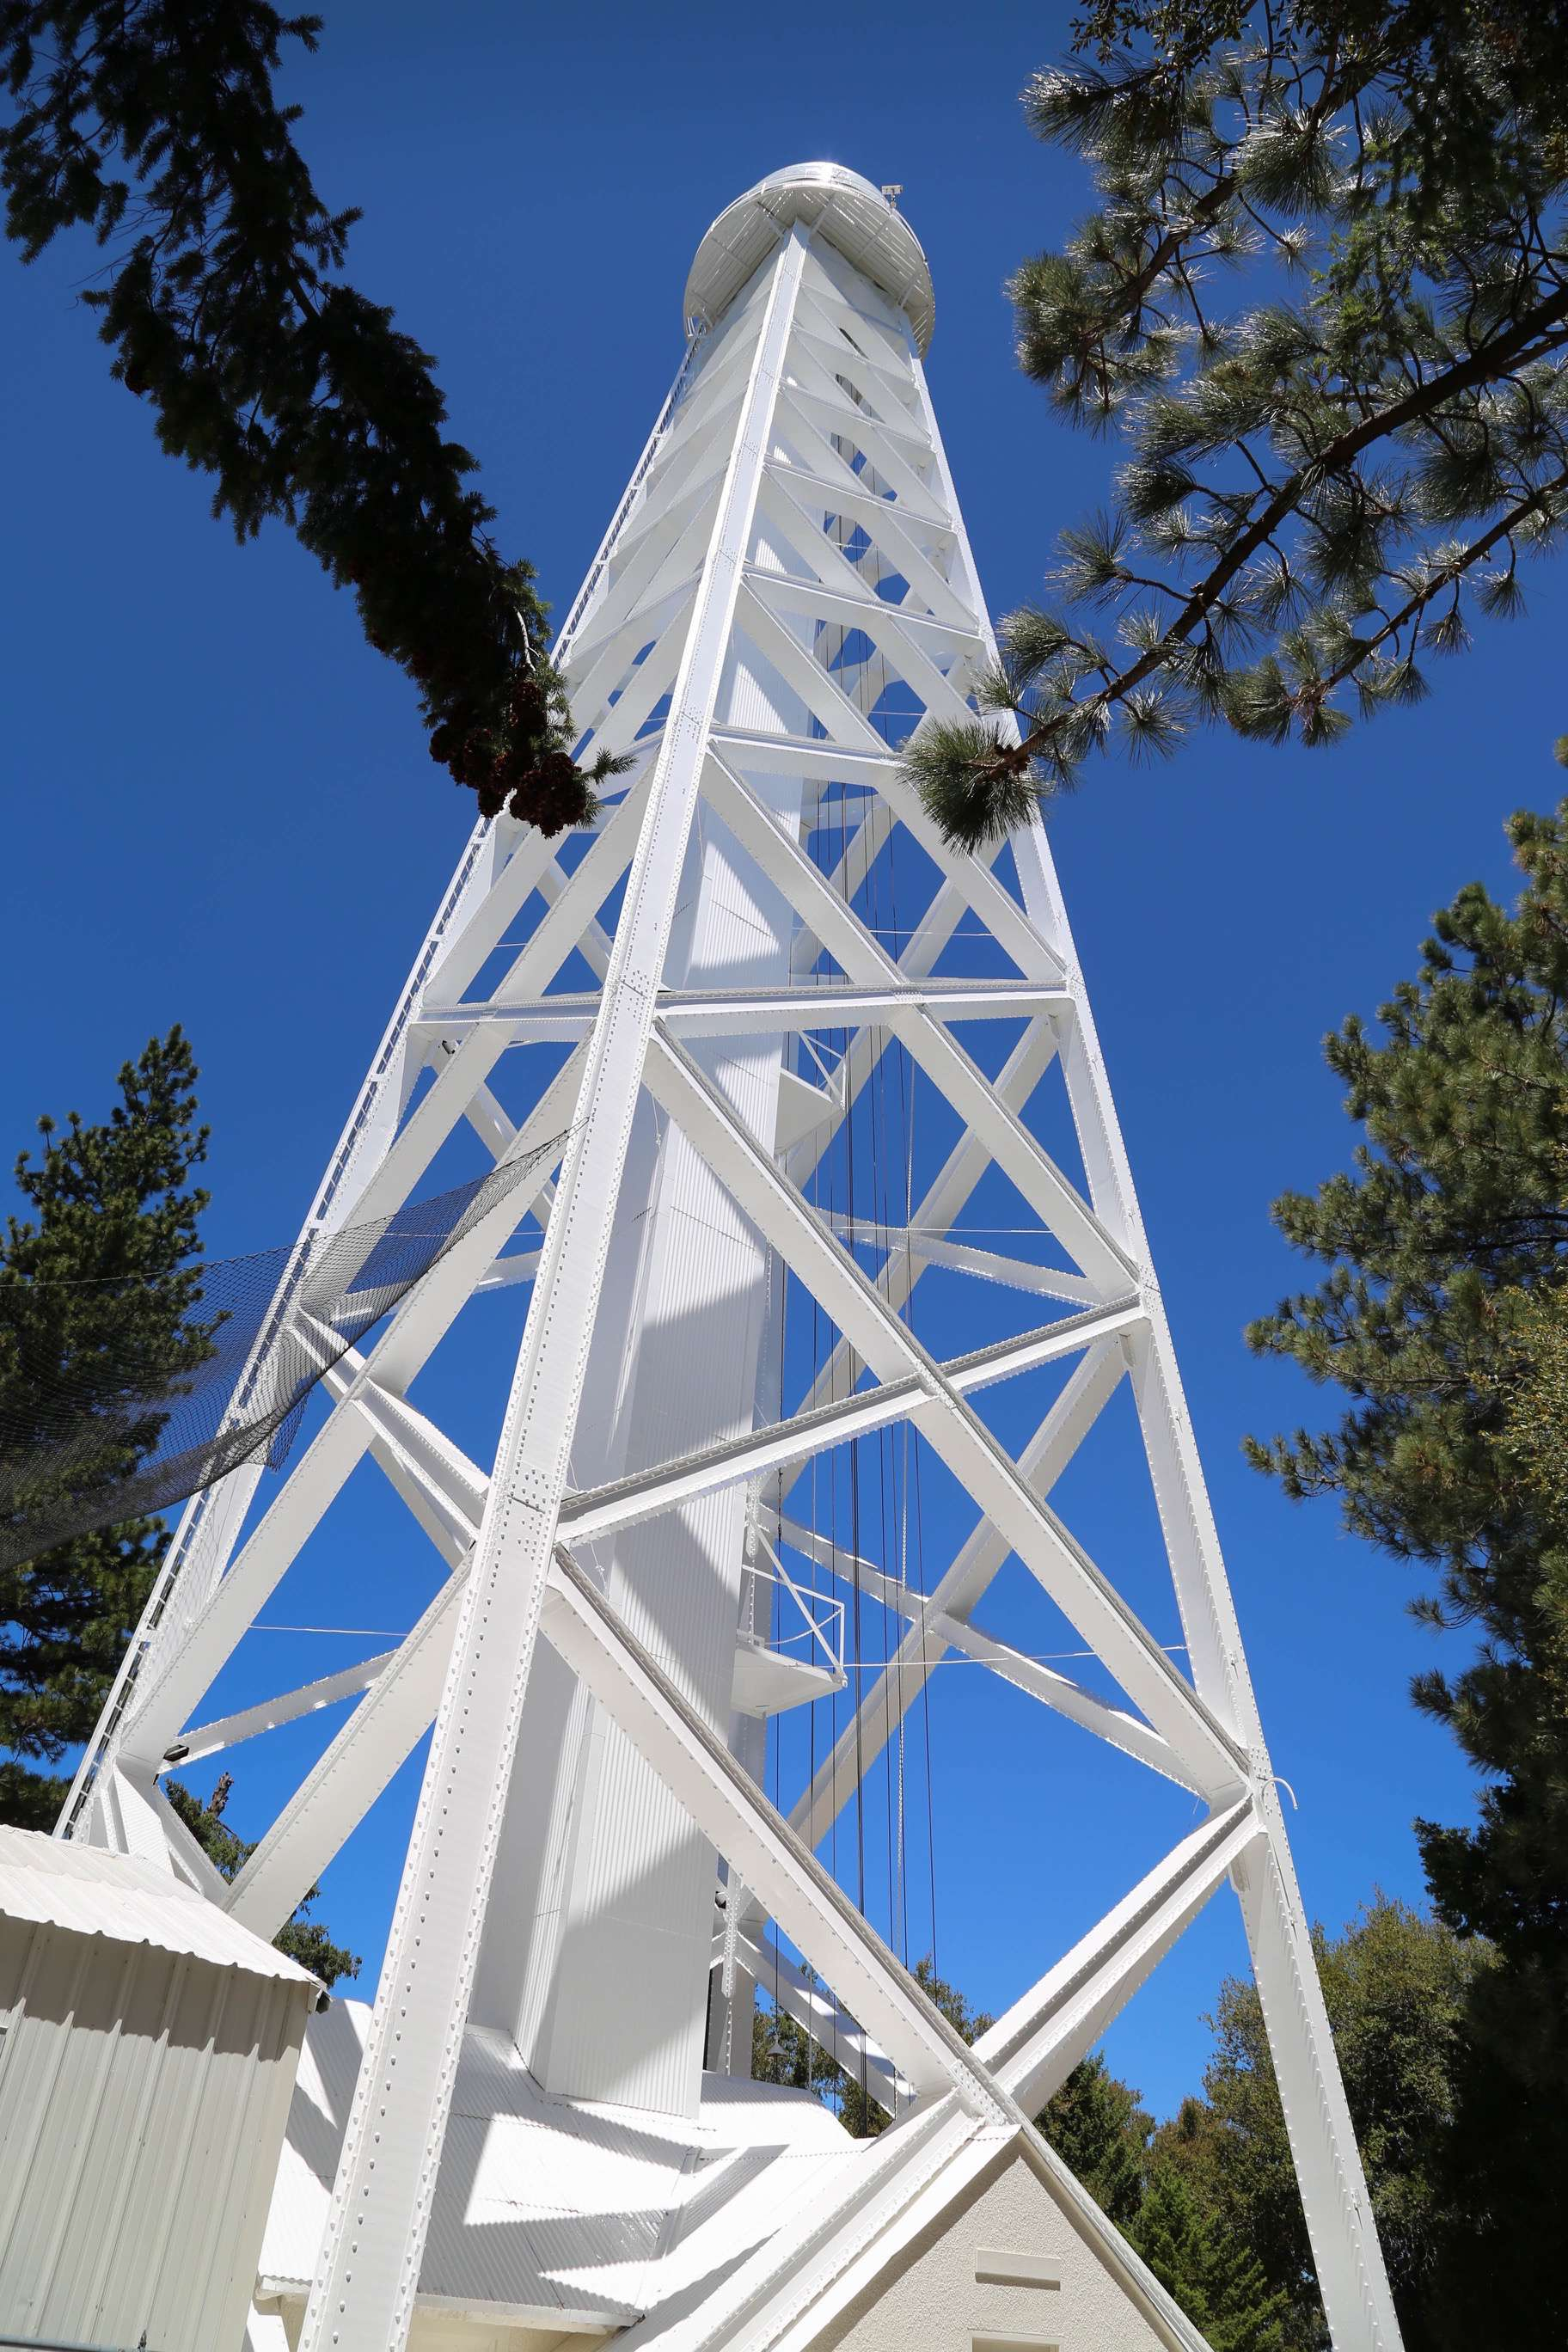 Solar observatories, like the 150-foot tower, were used by George Ellery Hale to understand that sunspots and magnetism have a relationship.